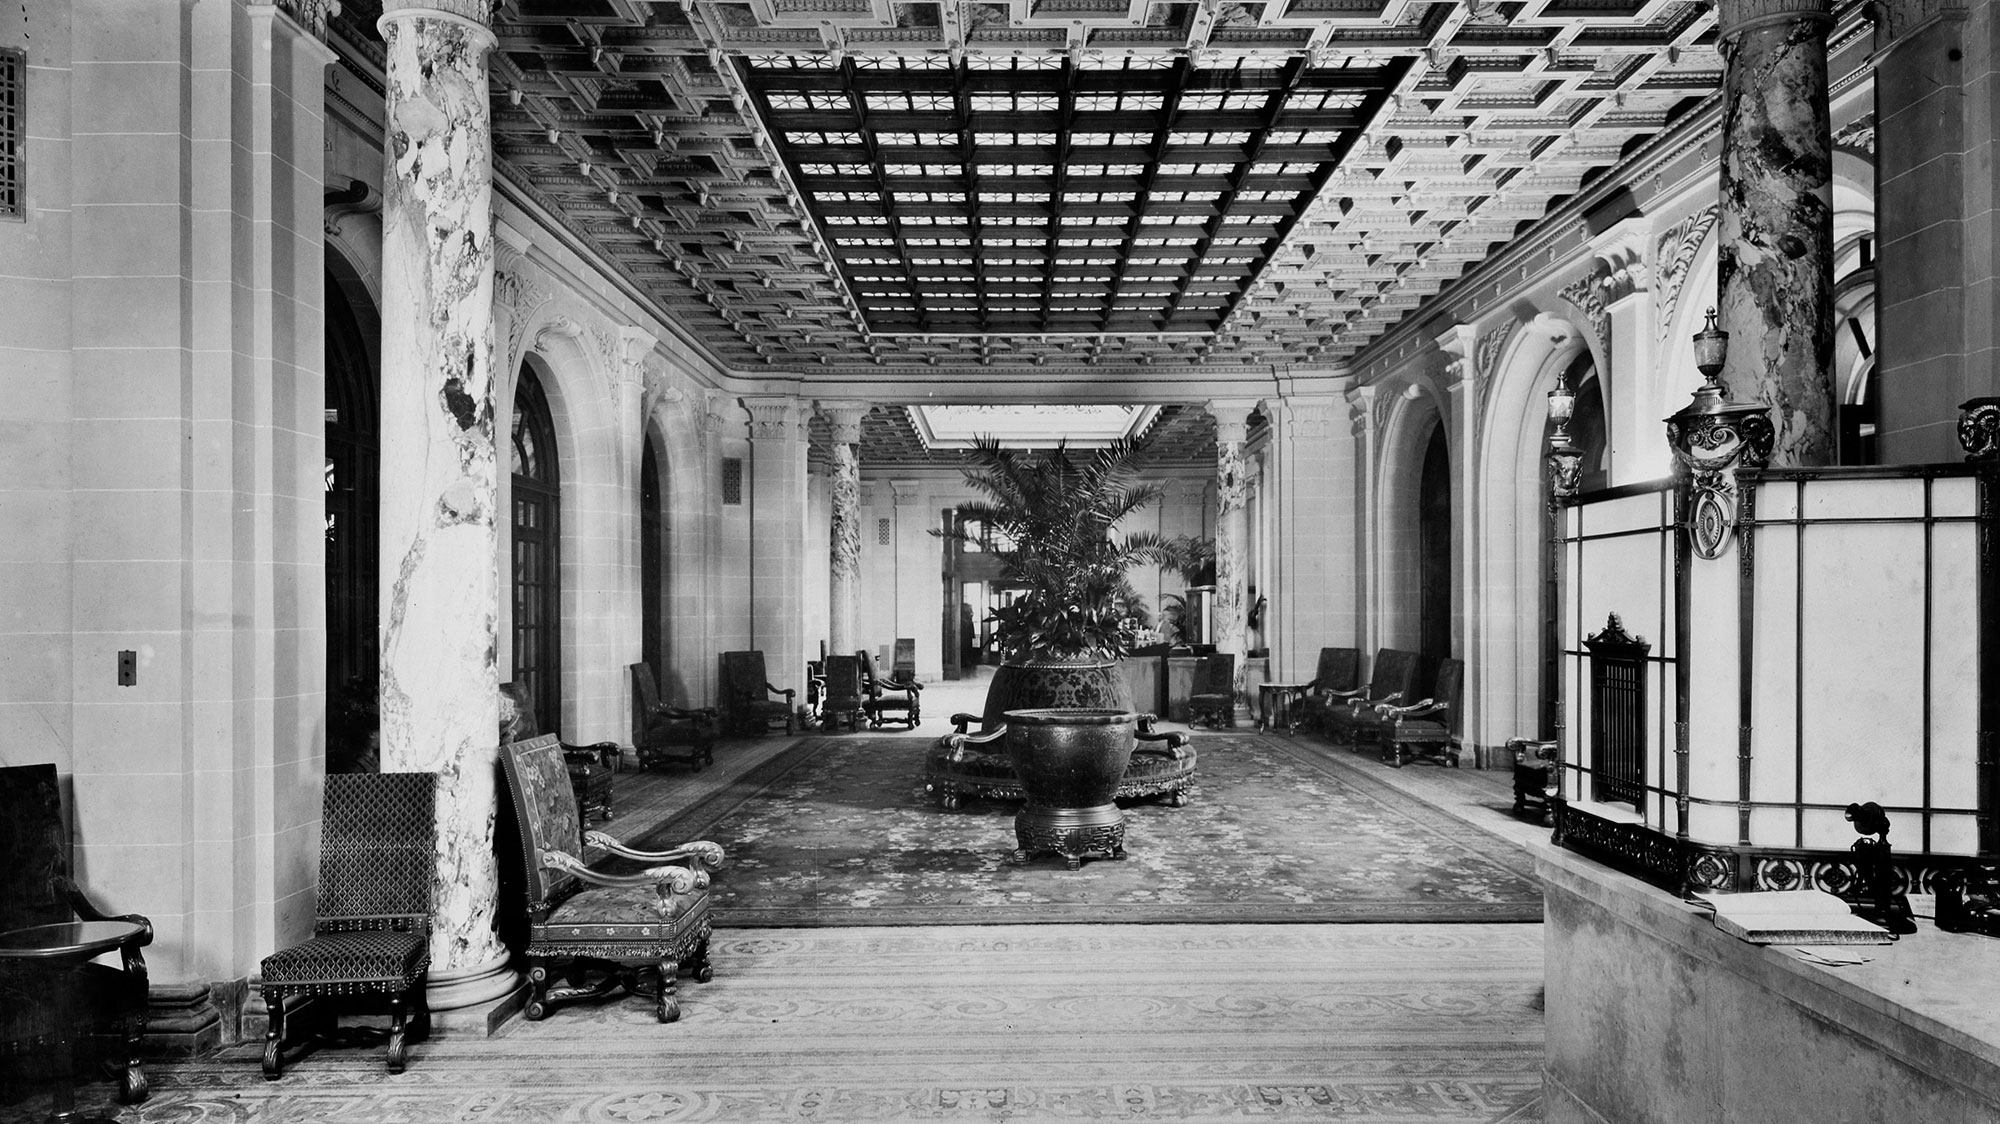 Historic Image of Lobby From Front Desk Fairmont Copley Plaza in Boston, Massachusetts.